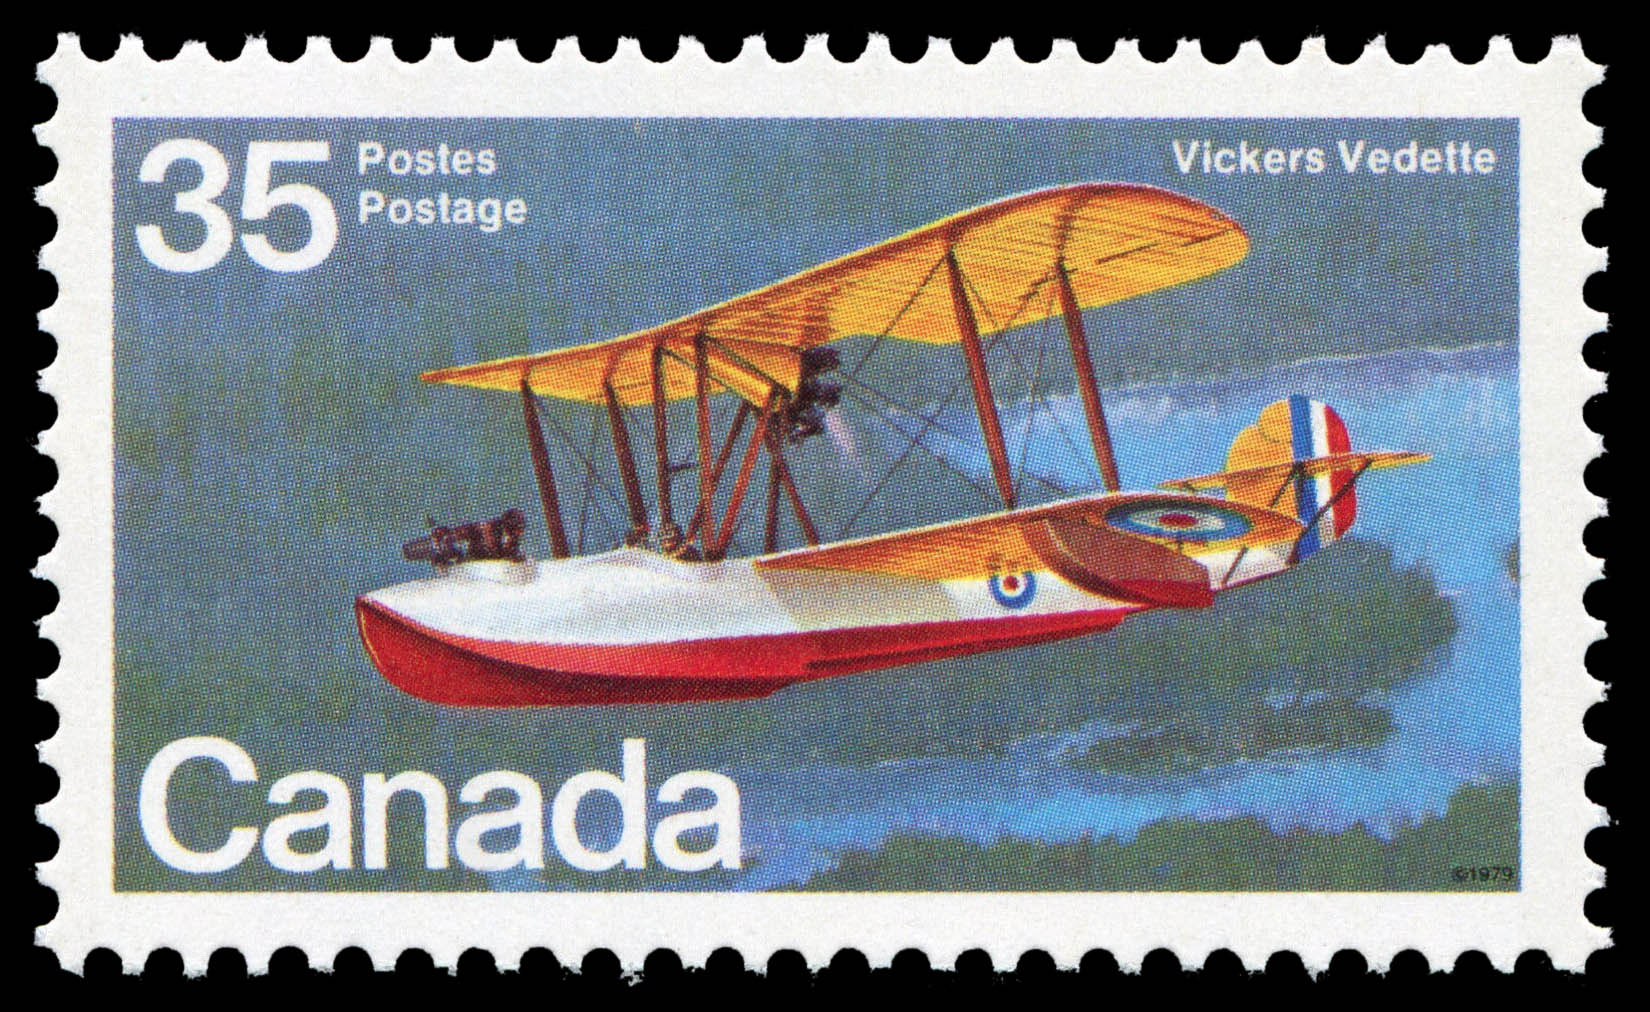 Vickers Vedette Canada Postage Stamp